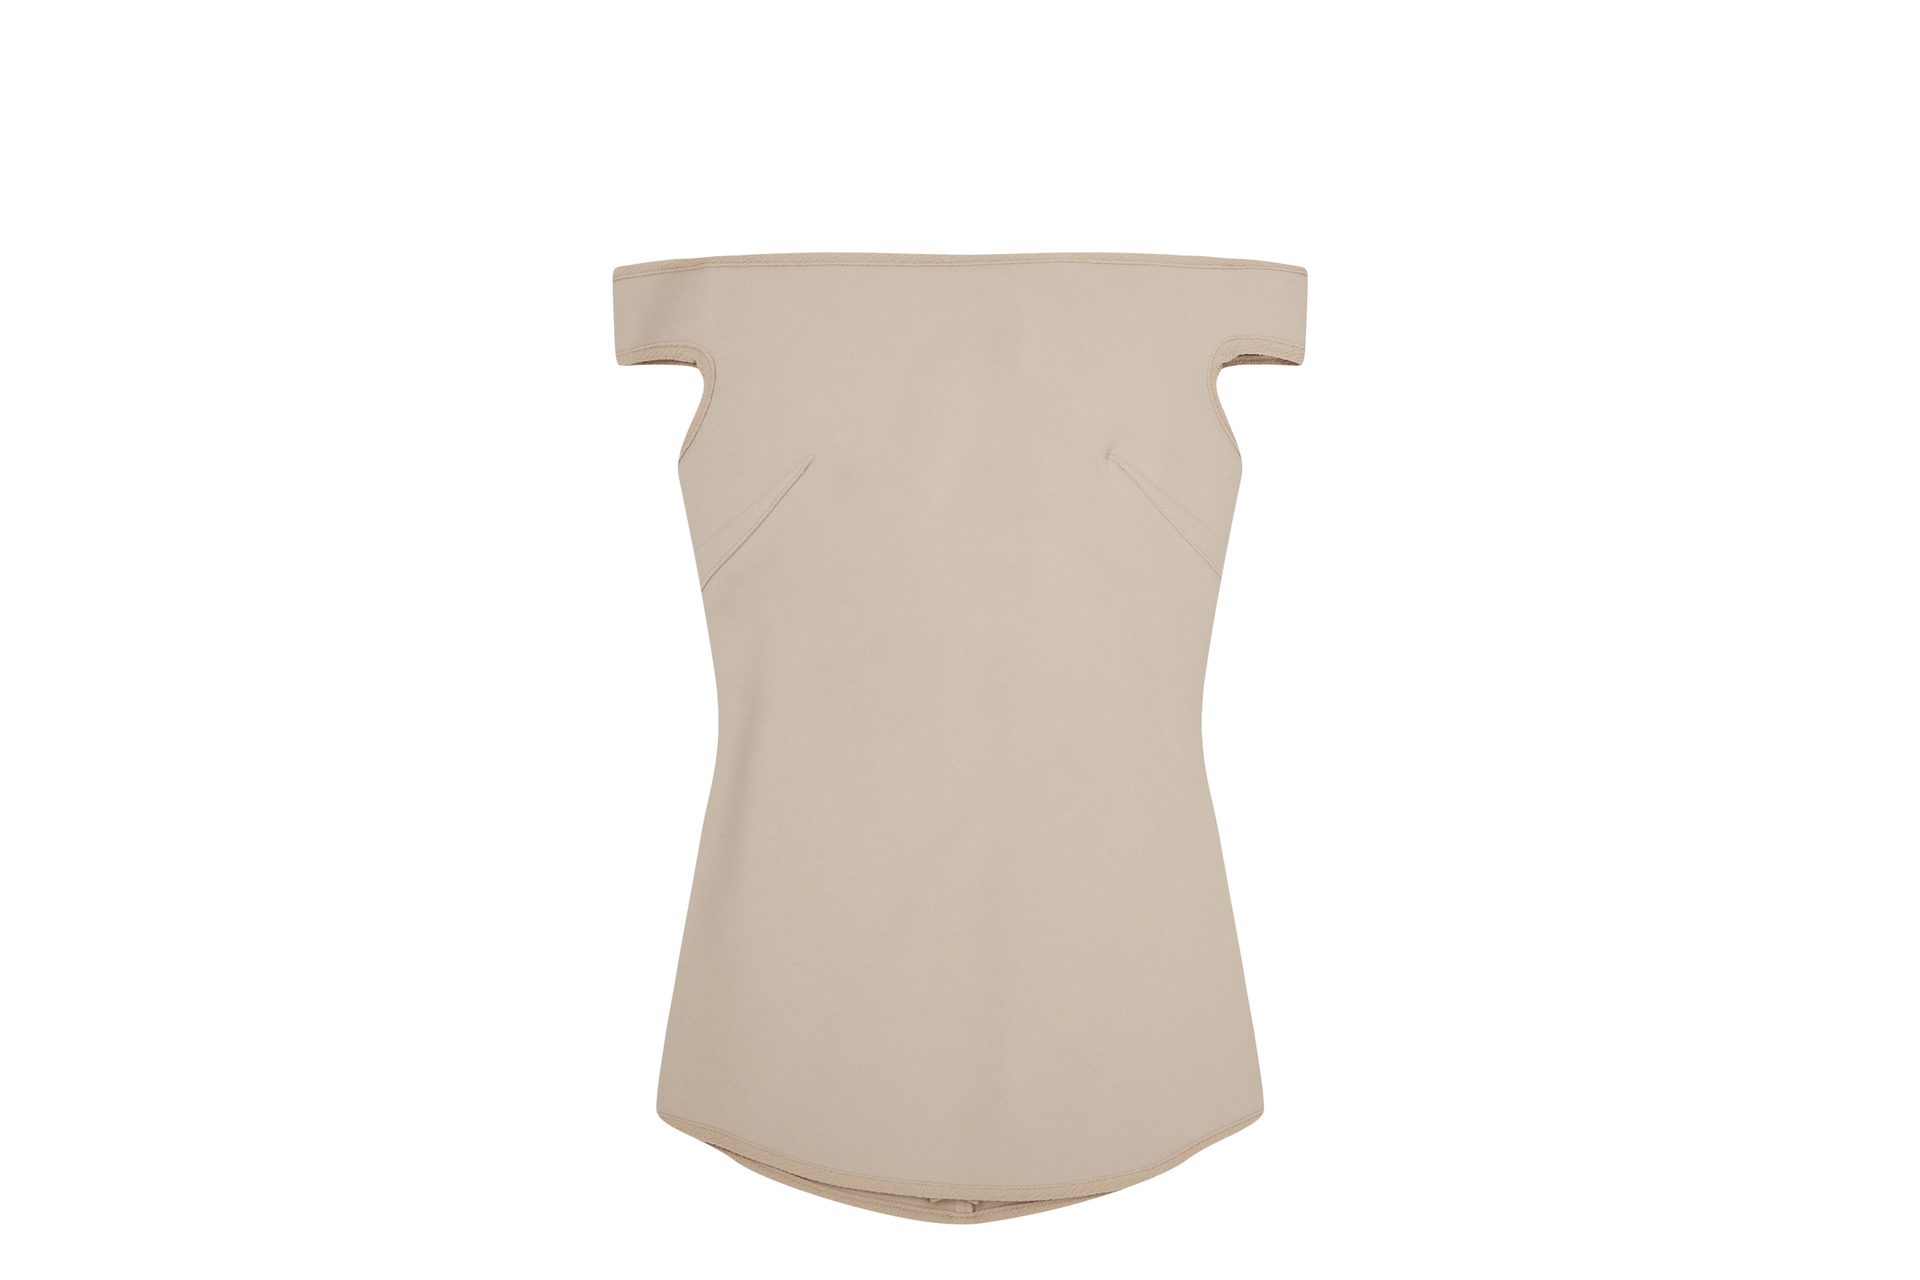 72dpi-2391652e74-46.-BY-JOHNNY,-Bare-Shoulder-Structure-Top-Nude,-180,-www.byjohnny.com.au